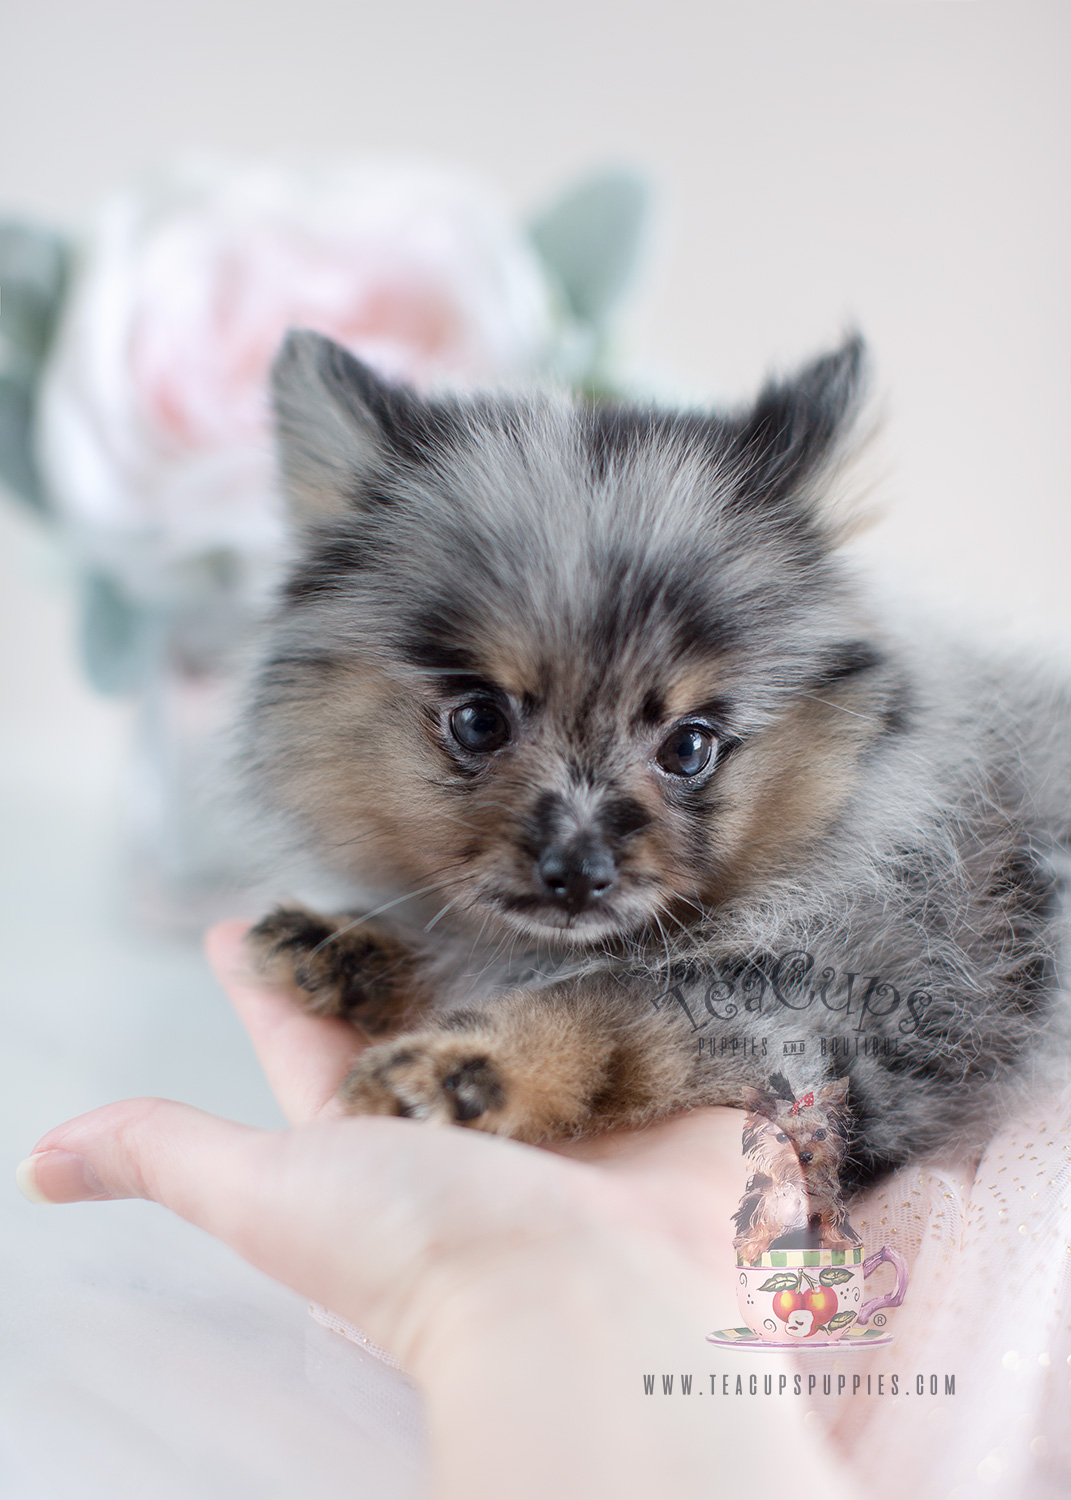 merle pomeranian for sale adorable teacup pomeranian puppies for sale teacups 1562